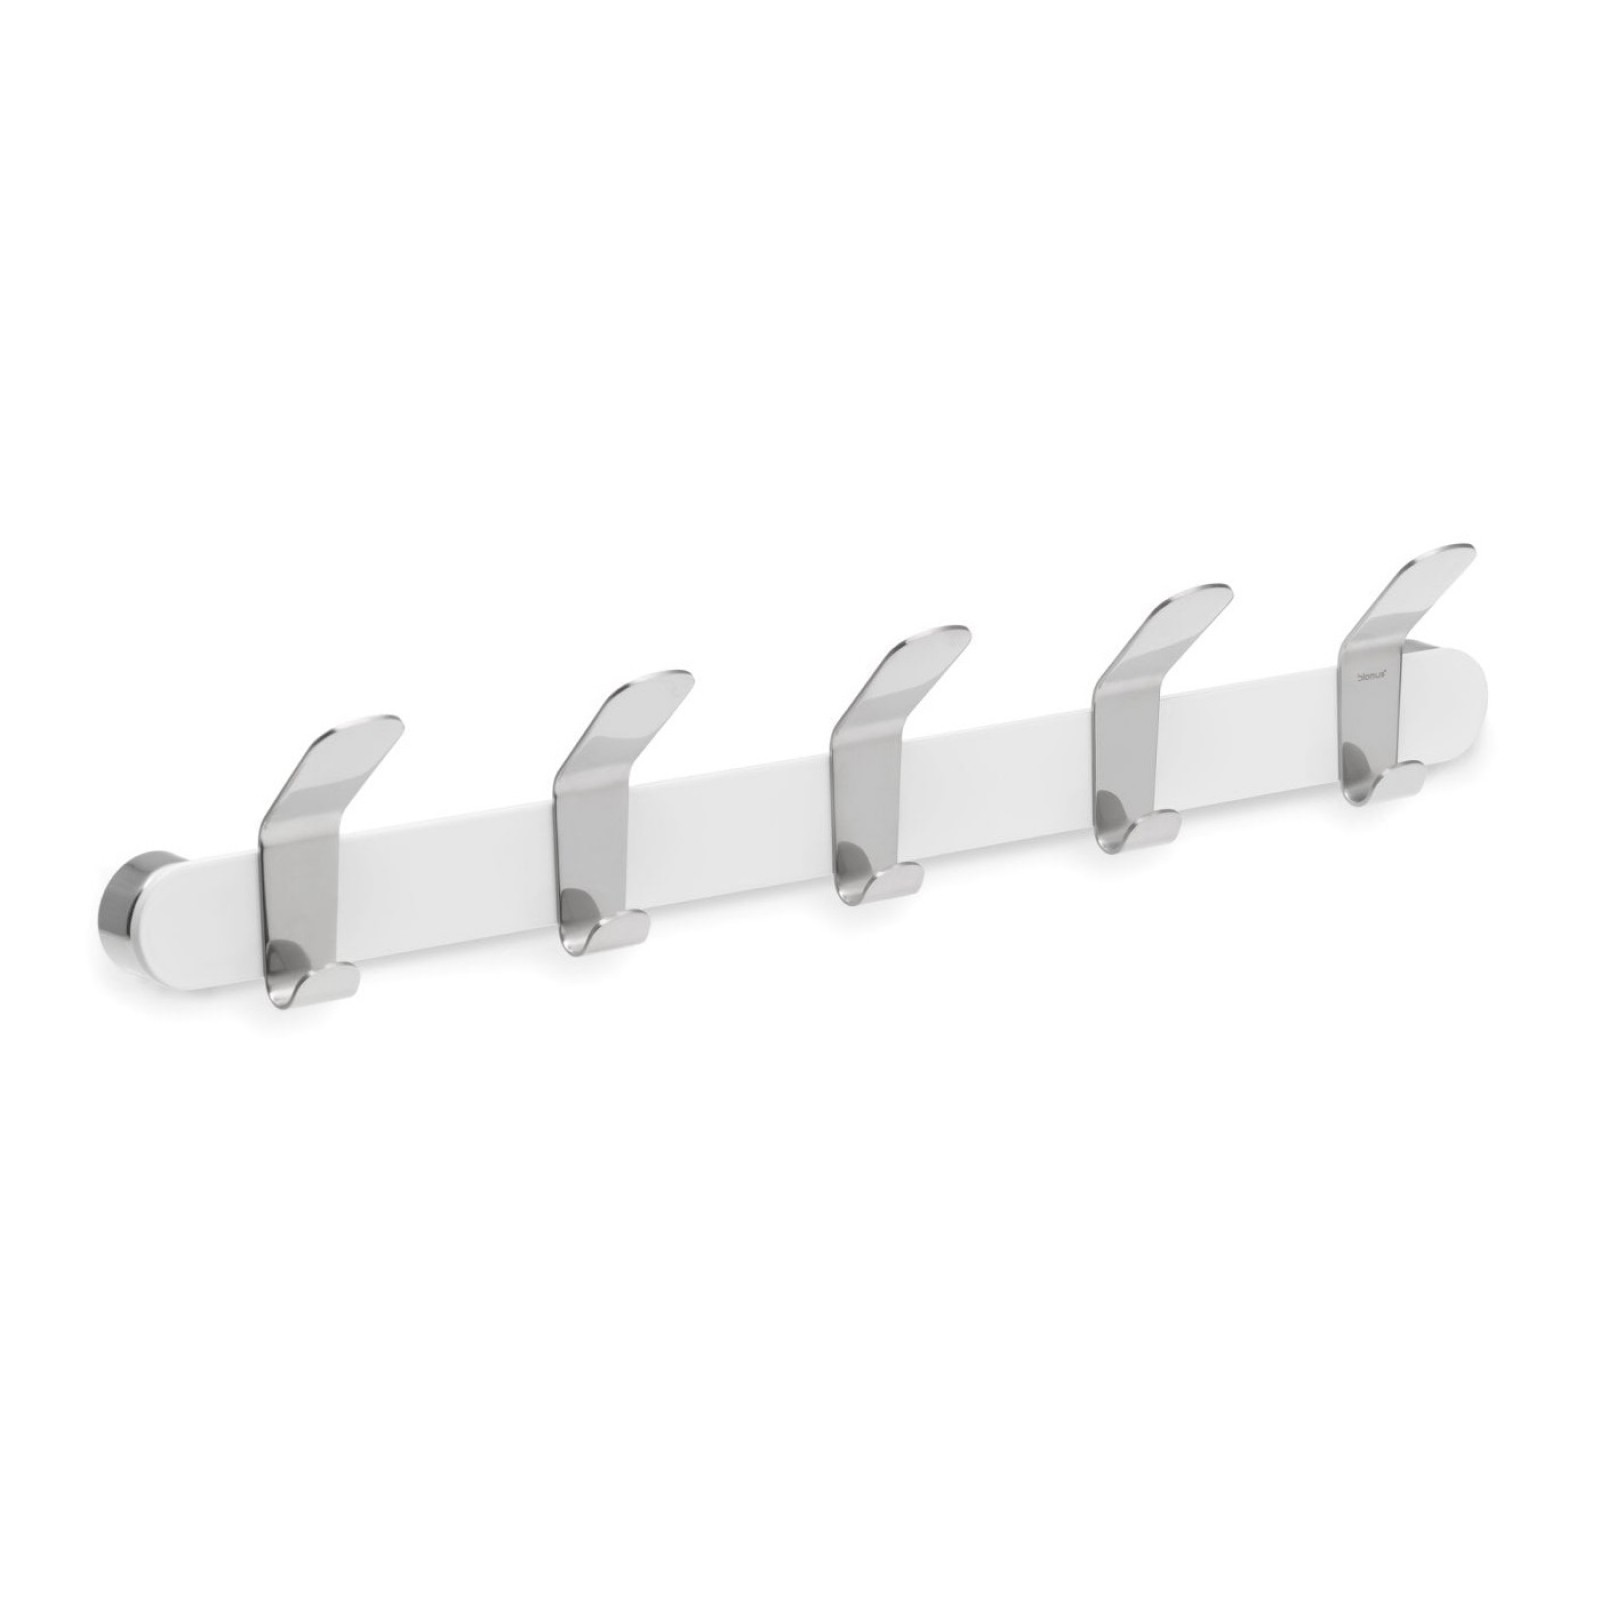 VENEA Coat Rack White - Blomus